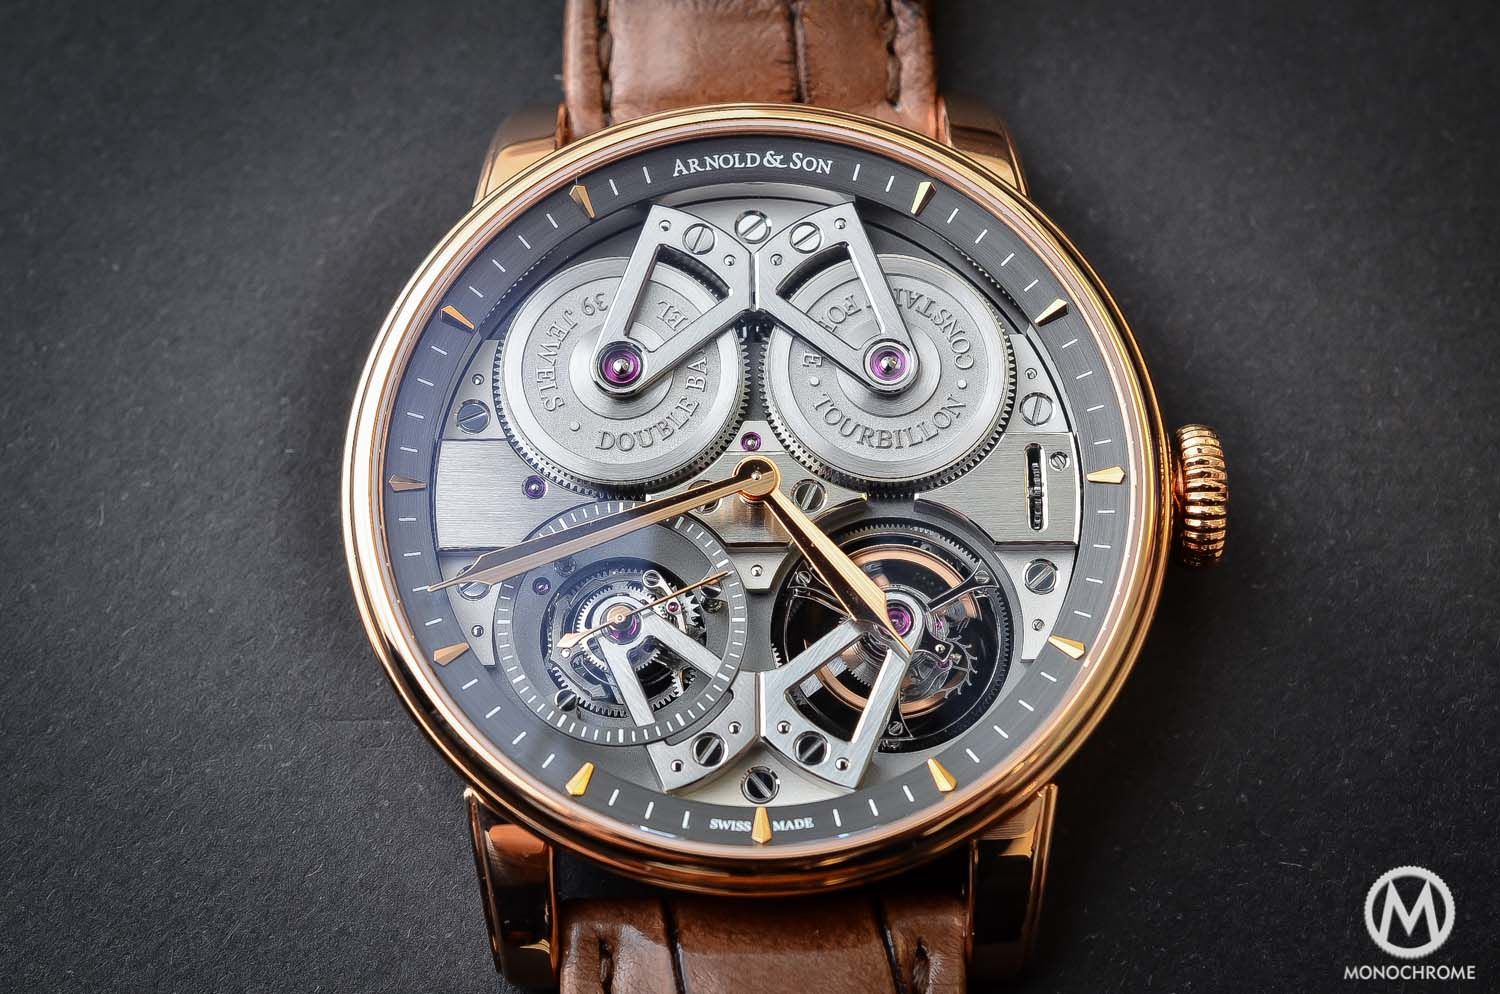 Arnold and Son Constant Force Tourbillon - hands-on review - case